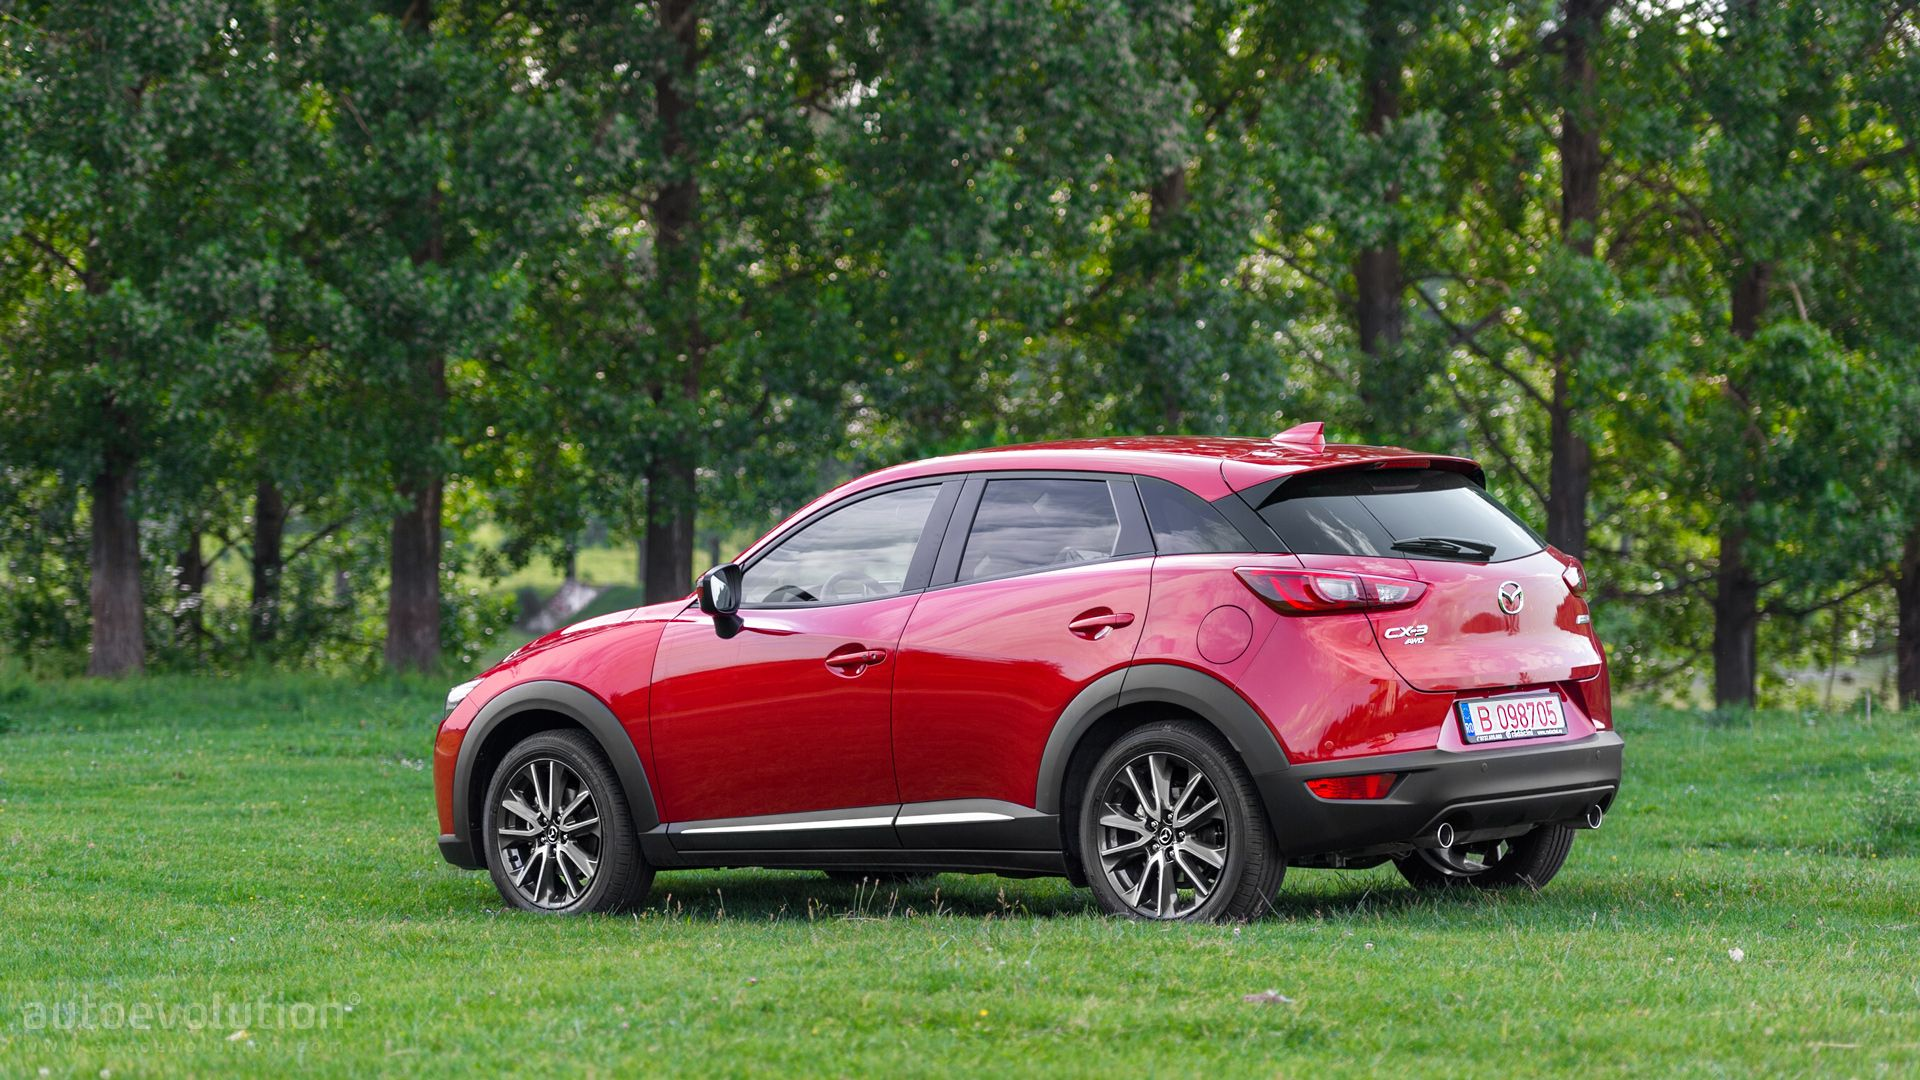 2015 mazda cx 3 hd wallpapers kodo lady in red autoevolution. Black Bedroom Furniture Sets. Home Design Ideas